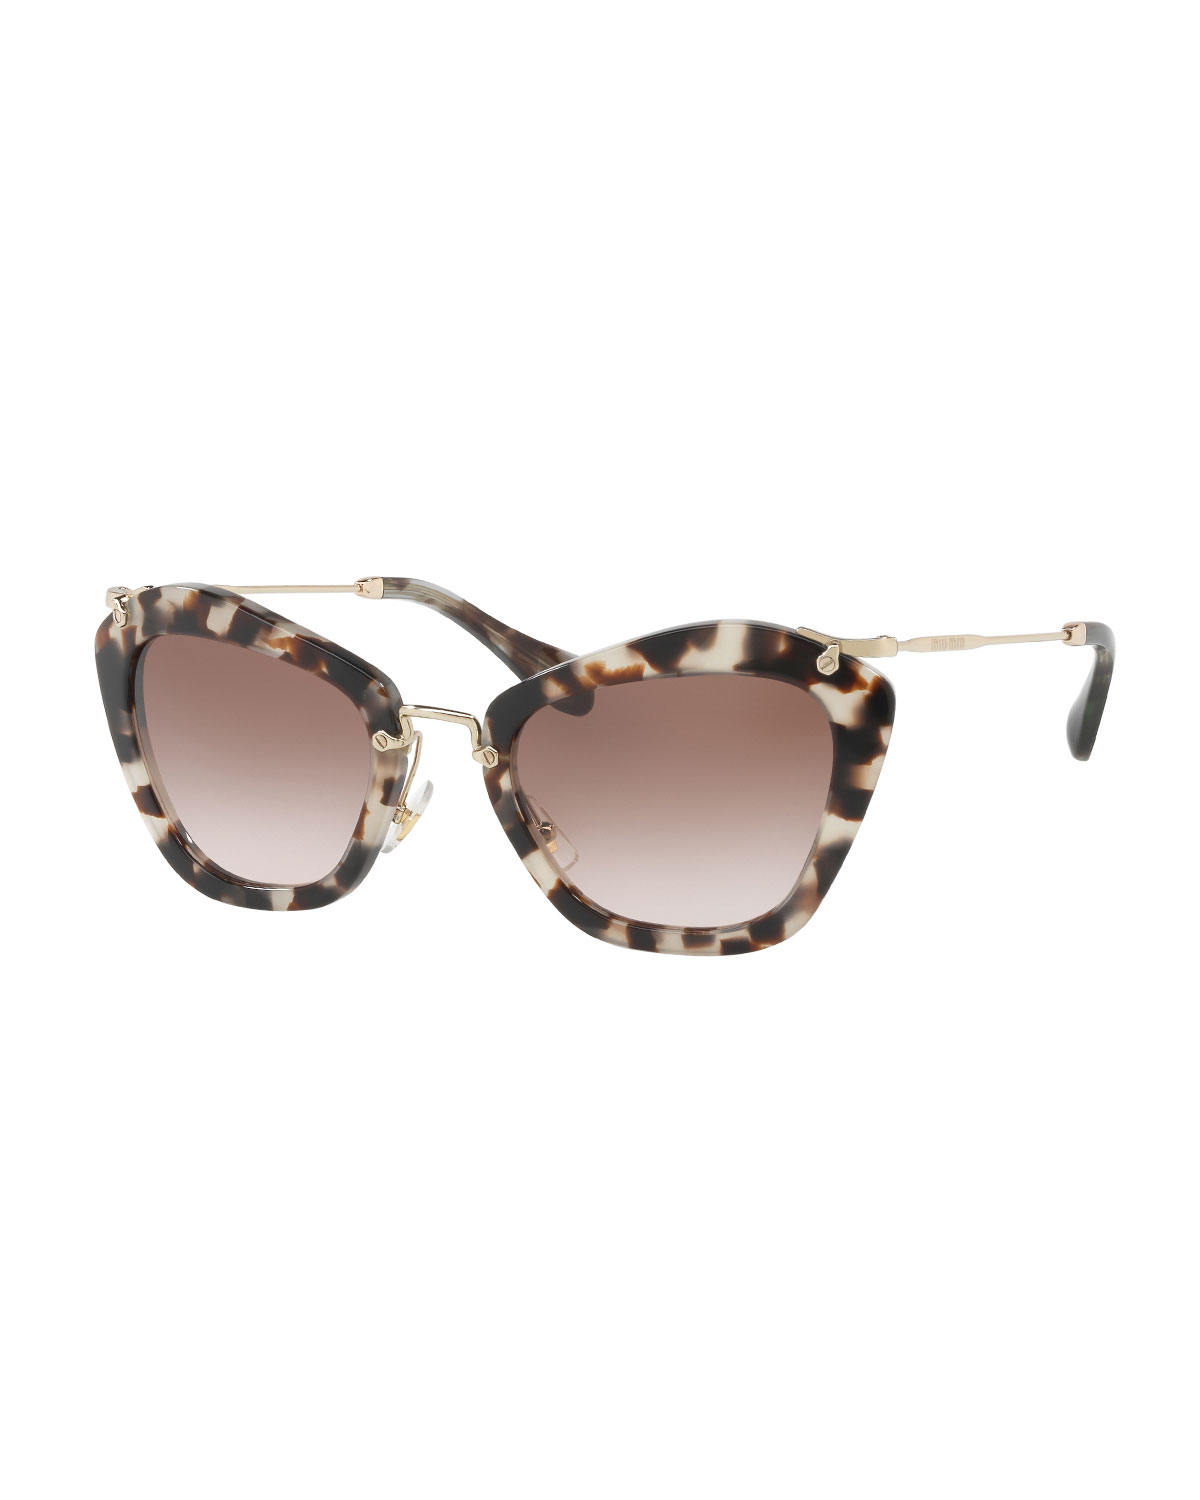 23e2dd33c11a Miu Miu Cat-Eye Acetate Sunglasses, Black | Neiman Marcus